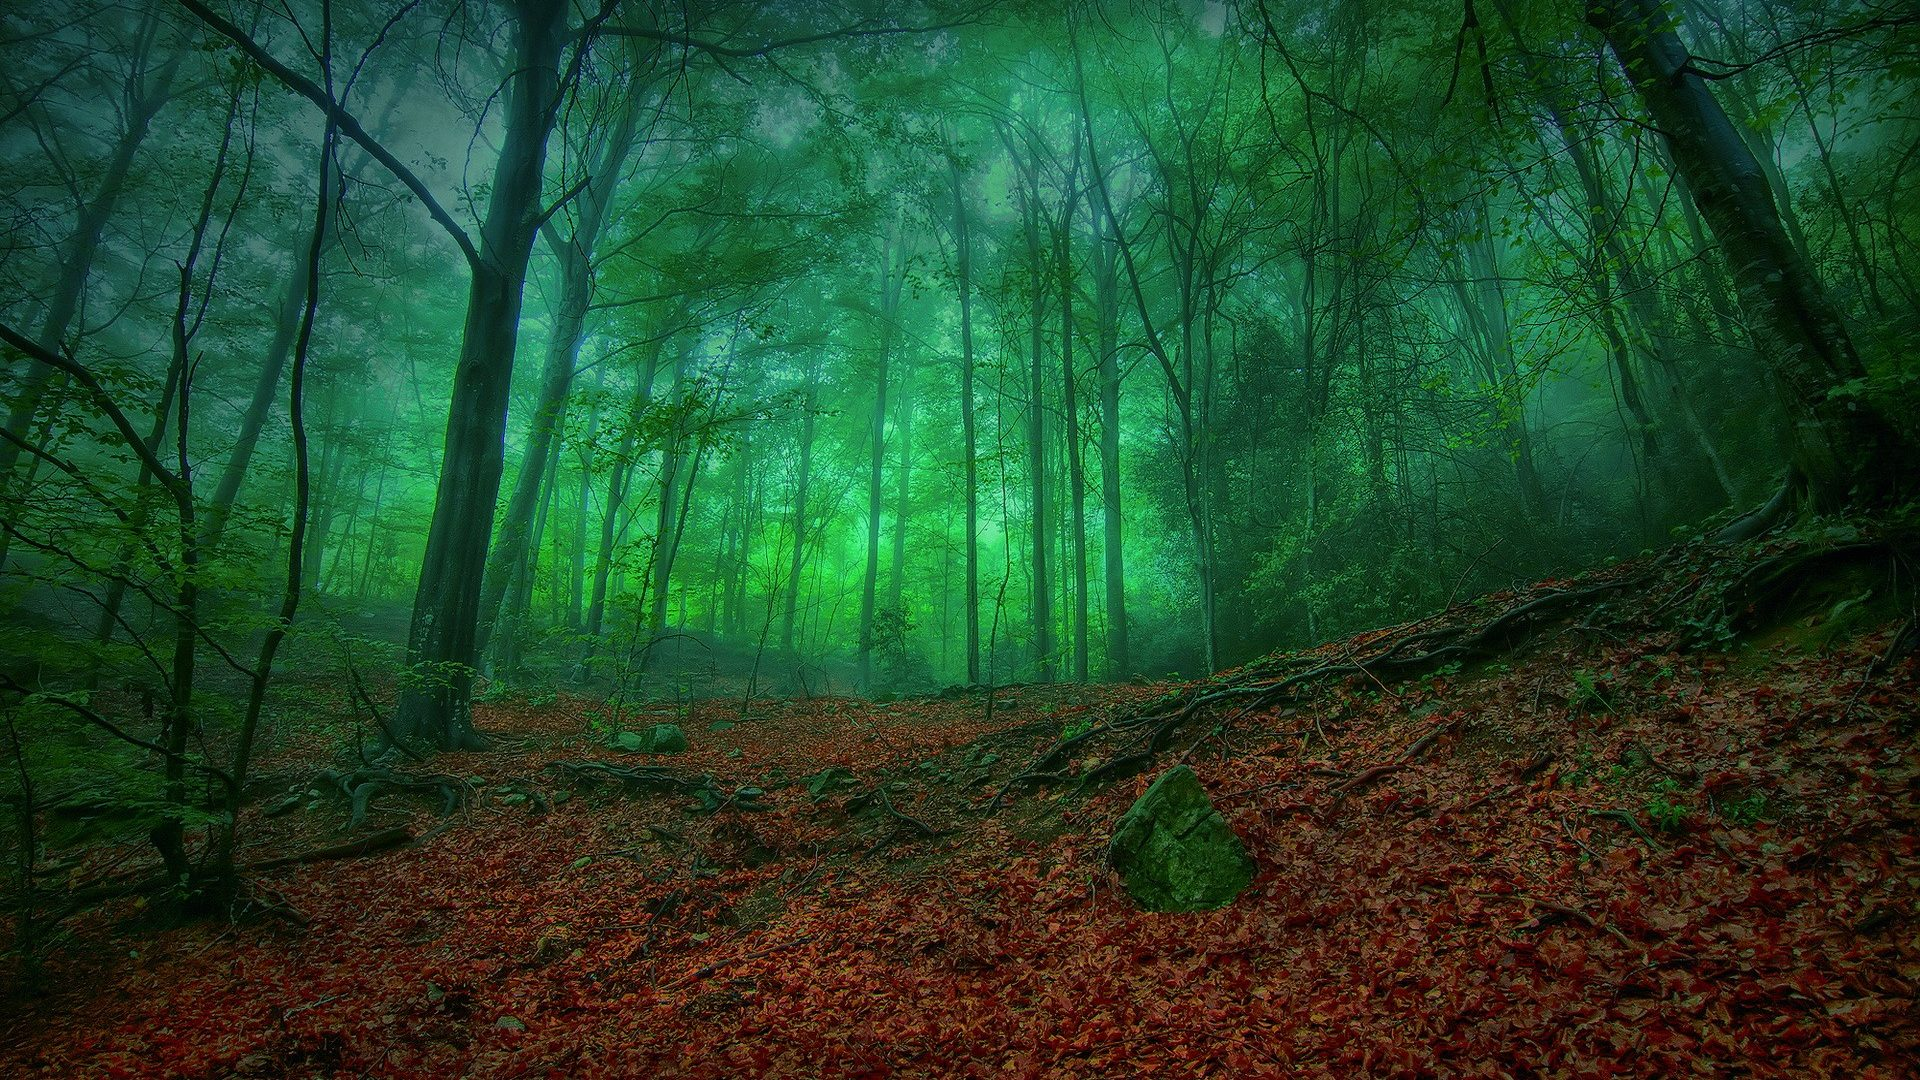 Misty Green Forest Enchantment Nature Leaves Mist Trees Forests Wallpaper For Android